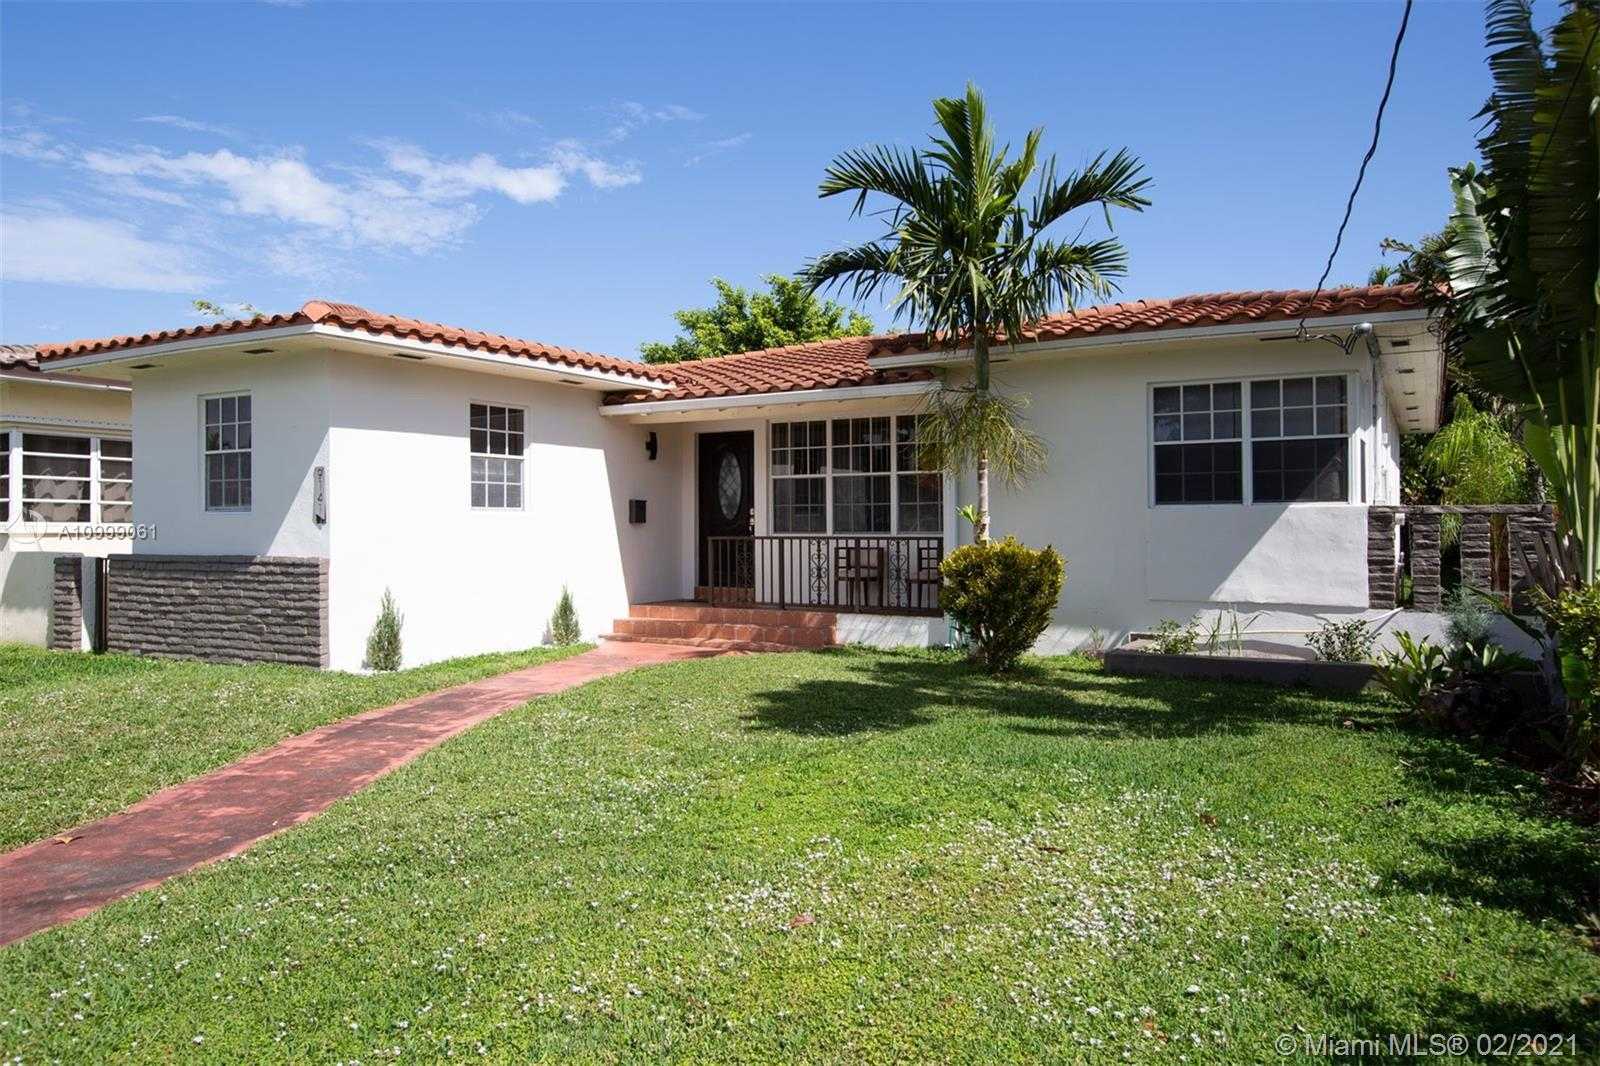 Altos Del Mar - 9141 Byron Ave, Surfside, FL 33154